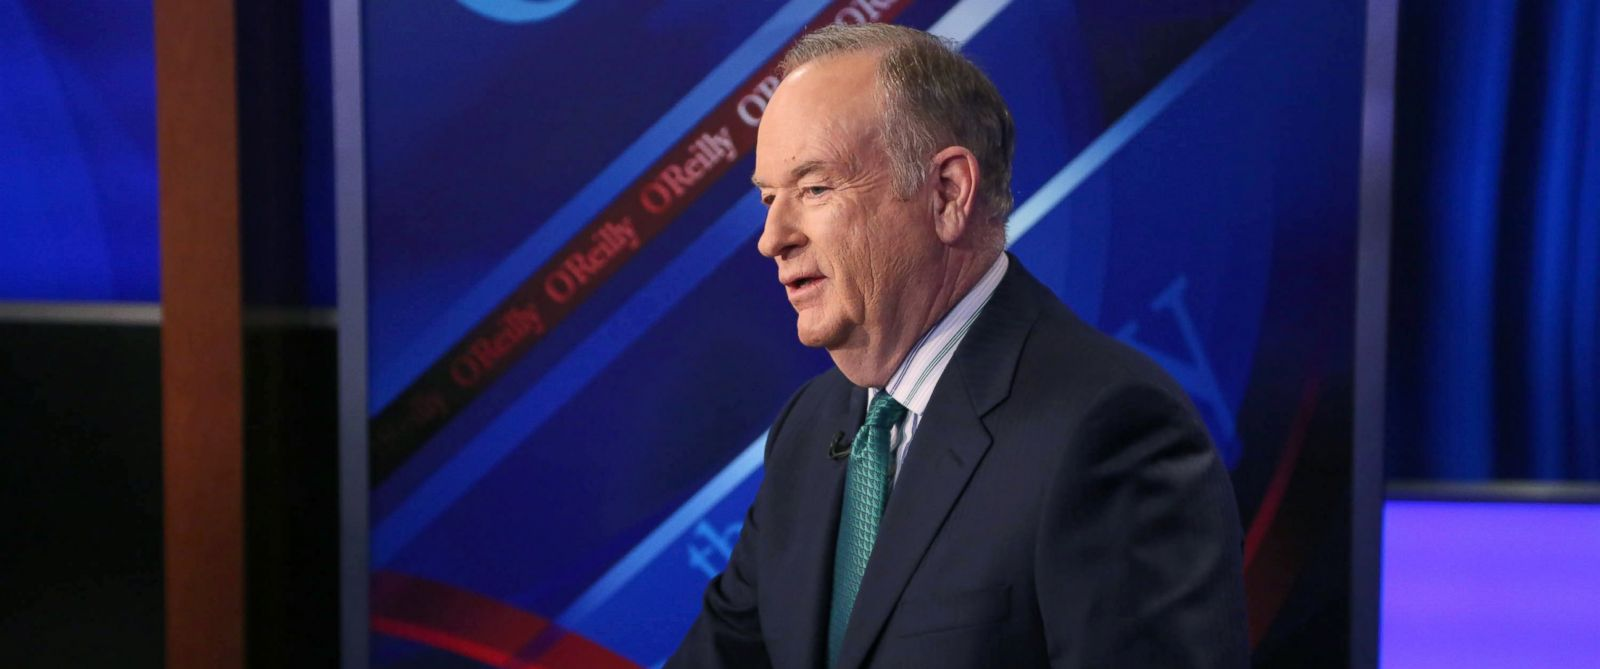 """PHOTO: Host Bill OReilly appears on """"The OReilly Factor"""" on The FOX News Channel, March 17, 2015 in New York City."""